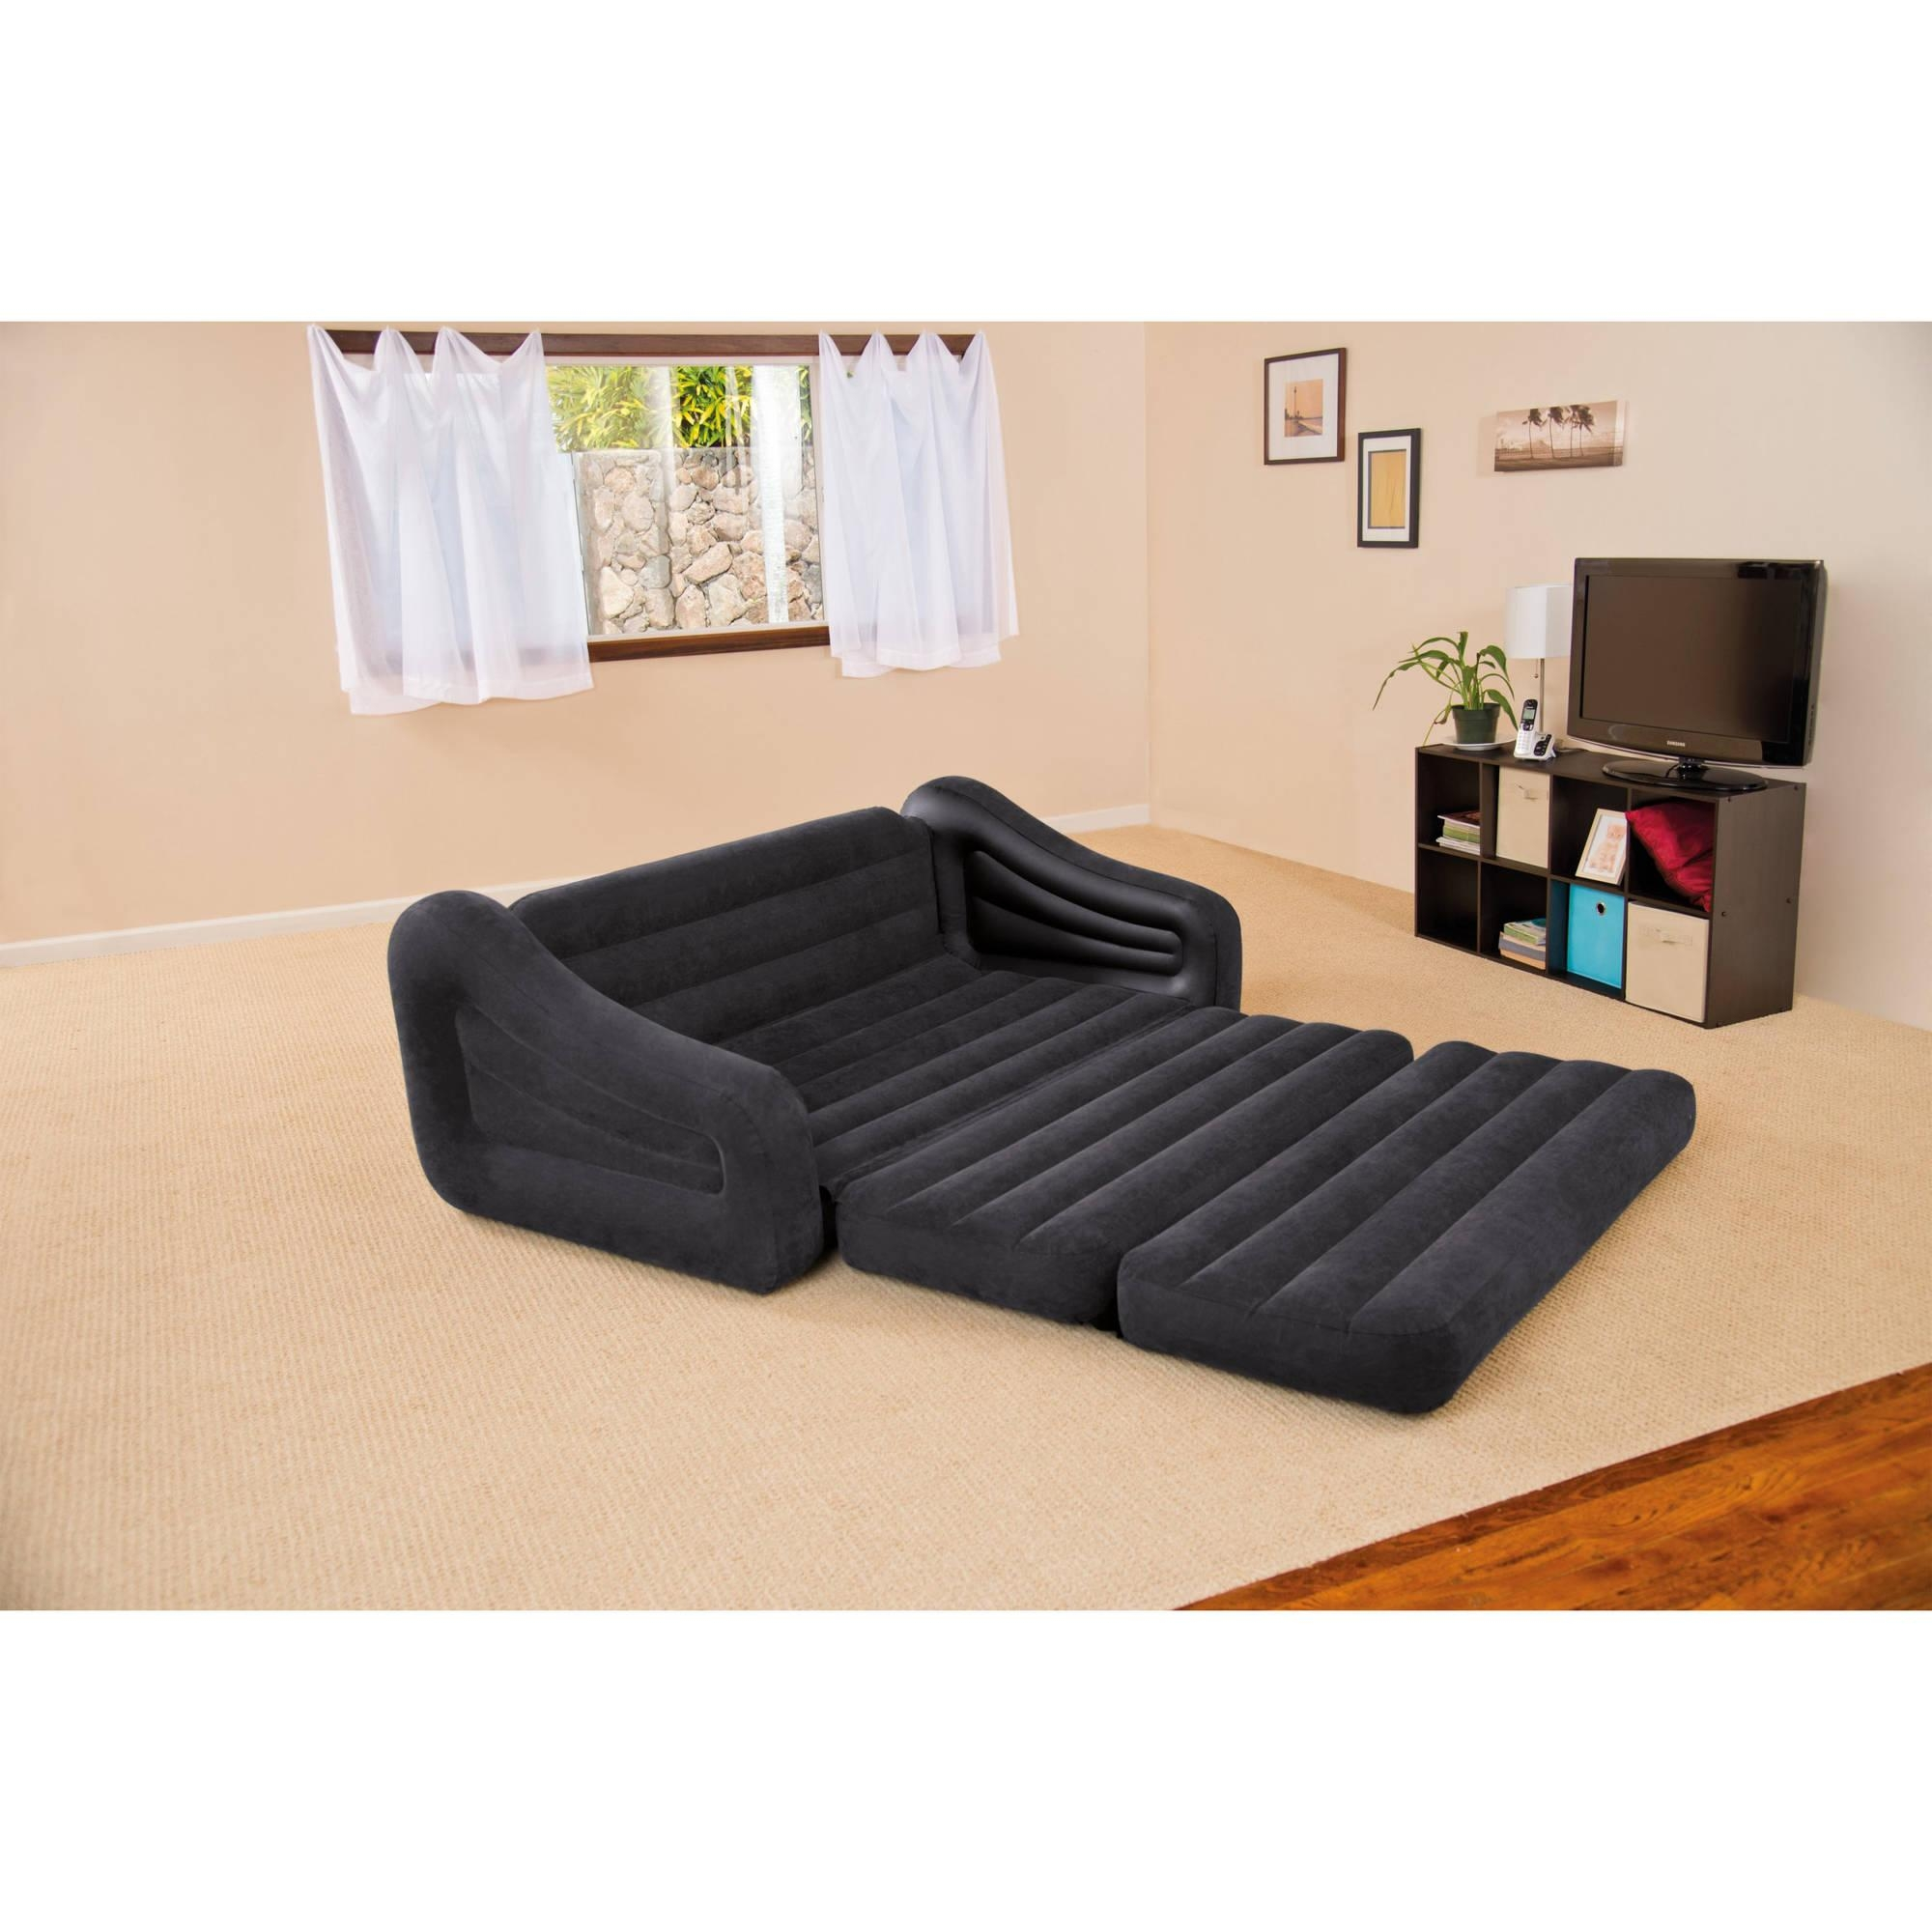 Intex Queen Inflatable Pull Out Sofa Bed – Walmart For Intex Inflatable Sofas (View 16 of 20)